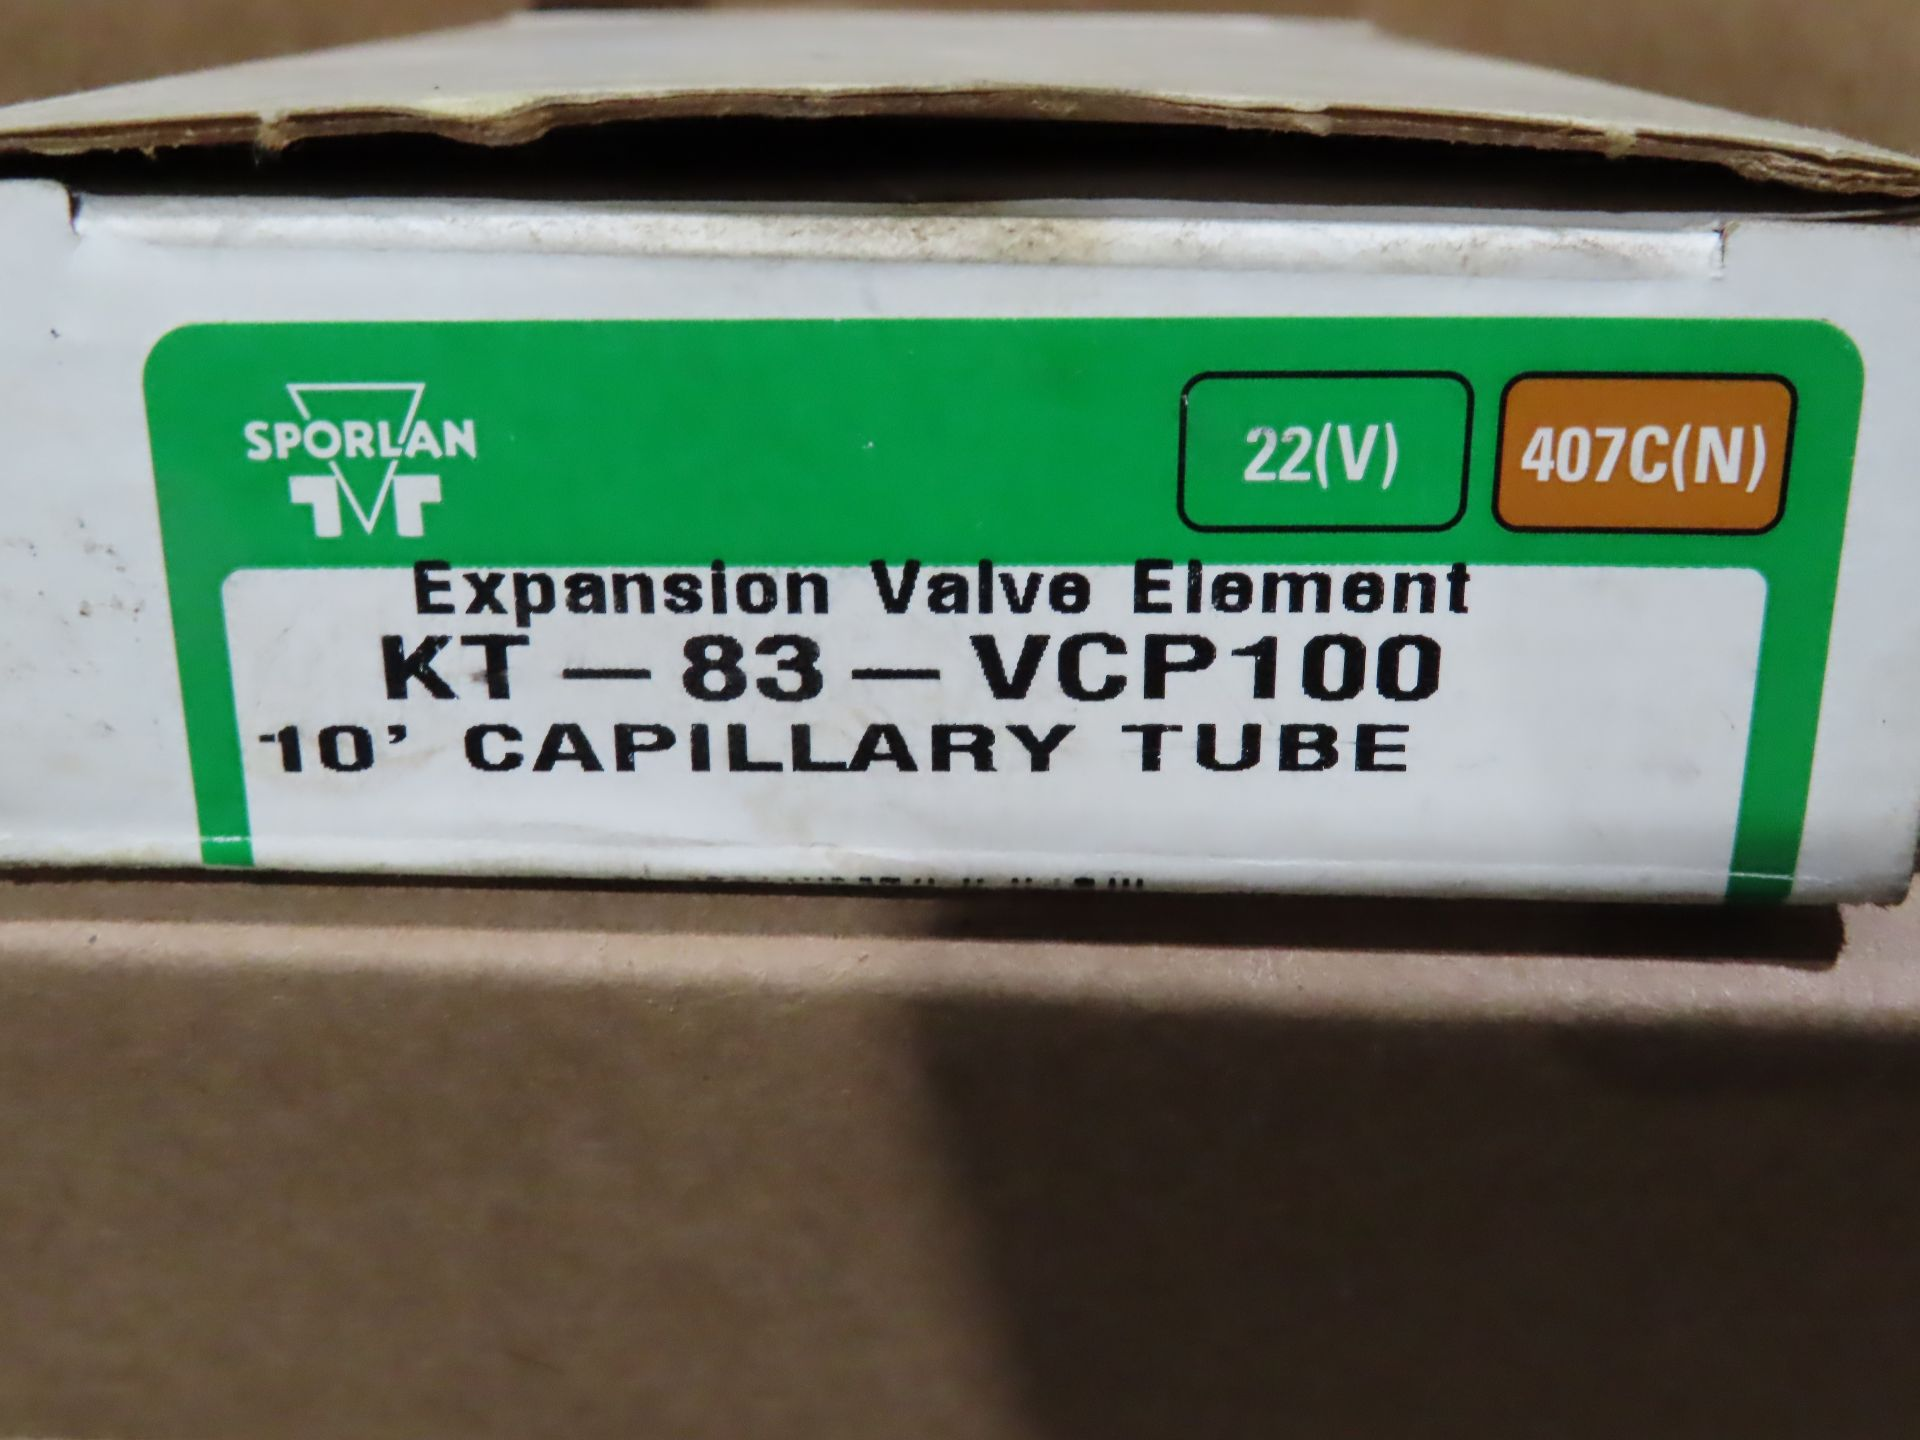 Lot 65 - Sporlan expansion valve element model KT-83-VCP100, as always, with Brolyn LLC auctions, all lots